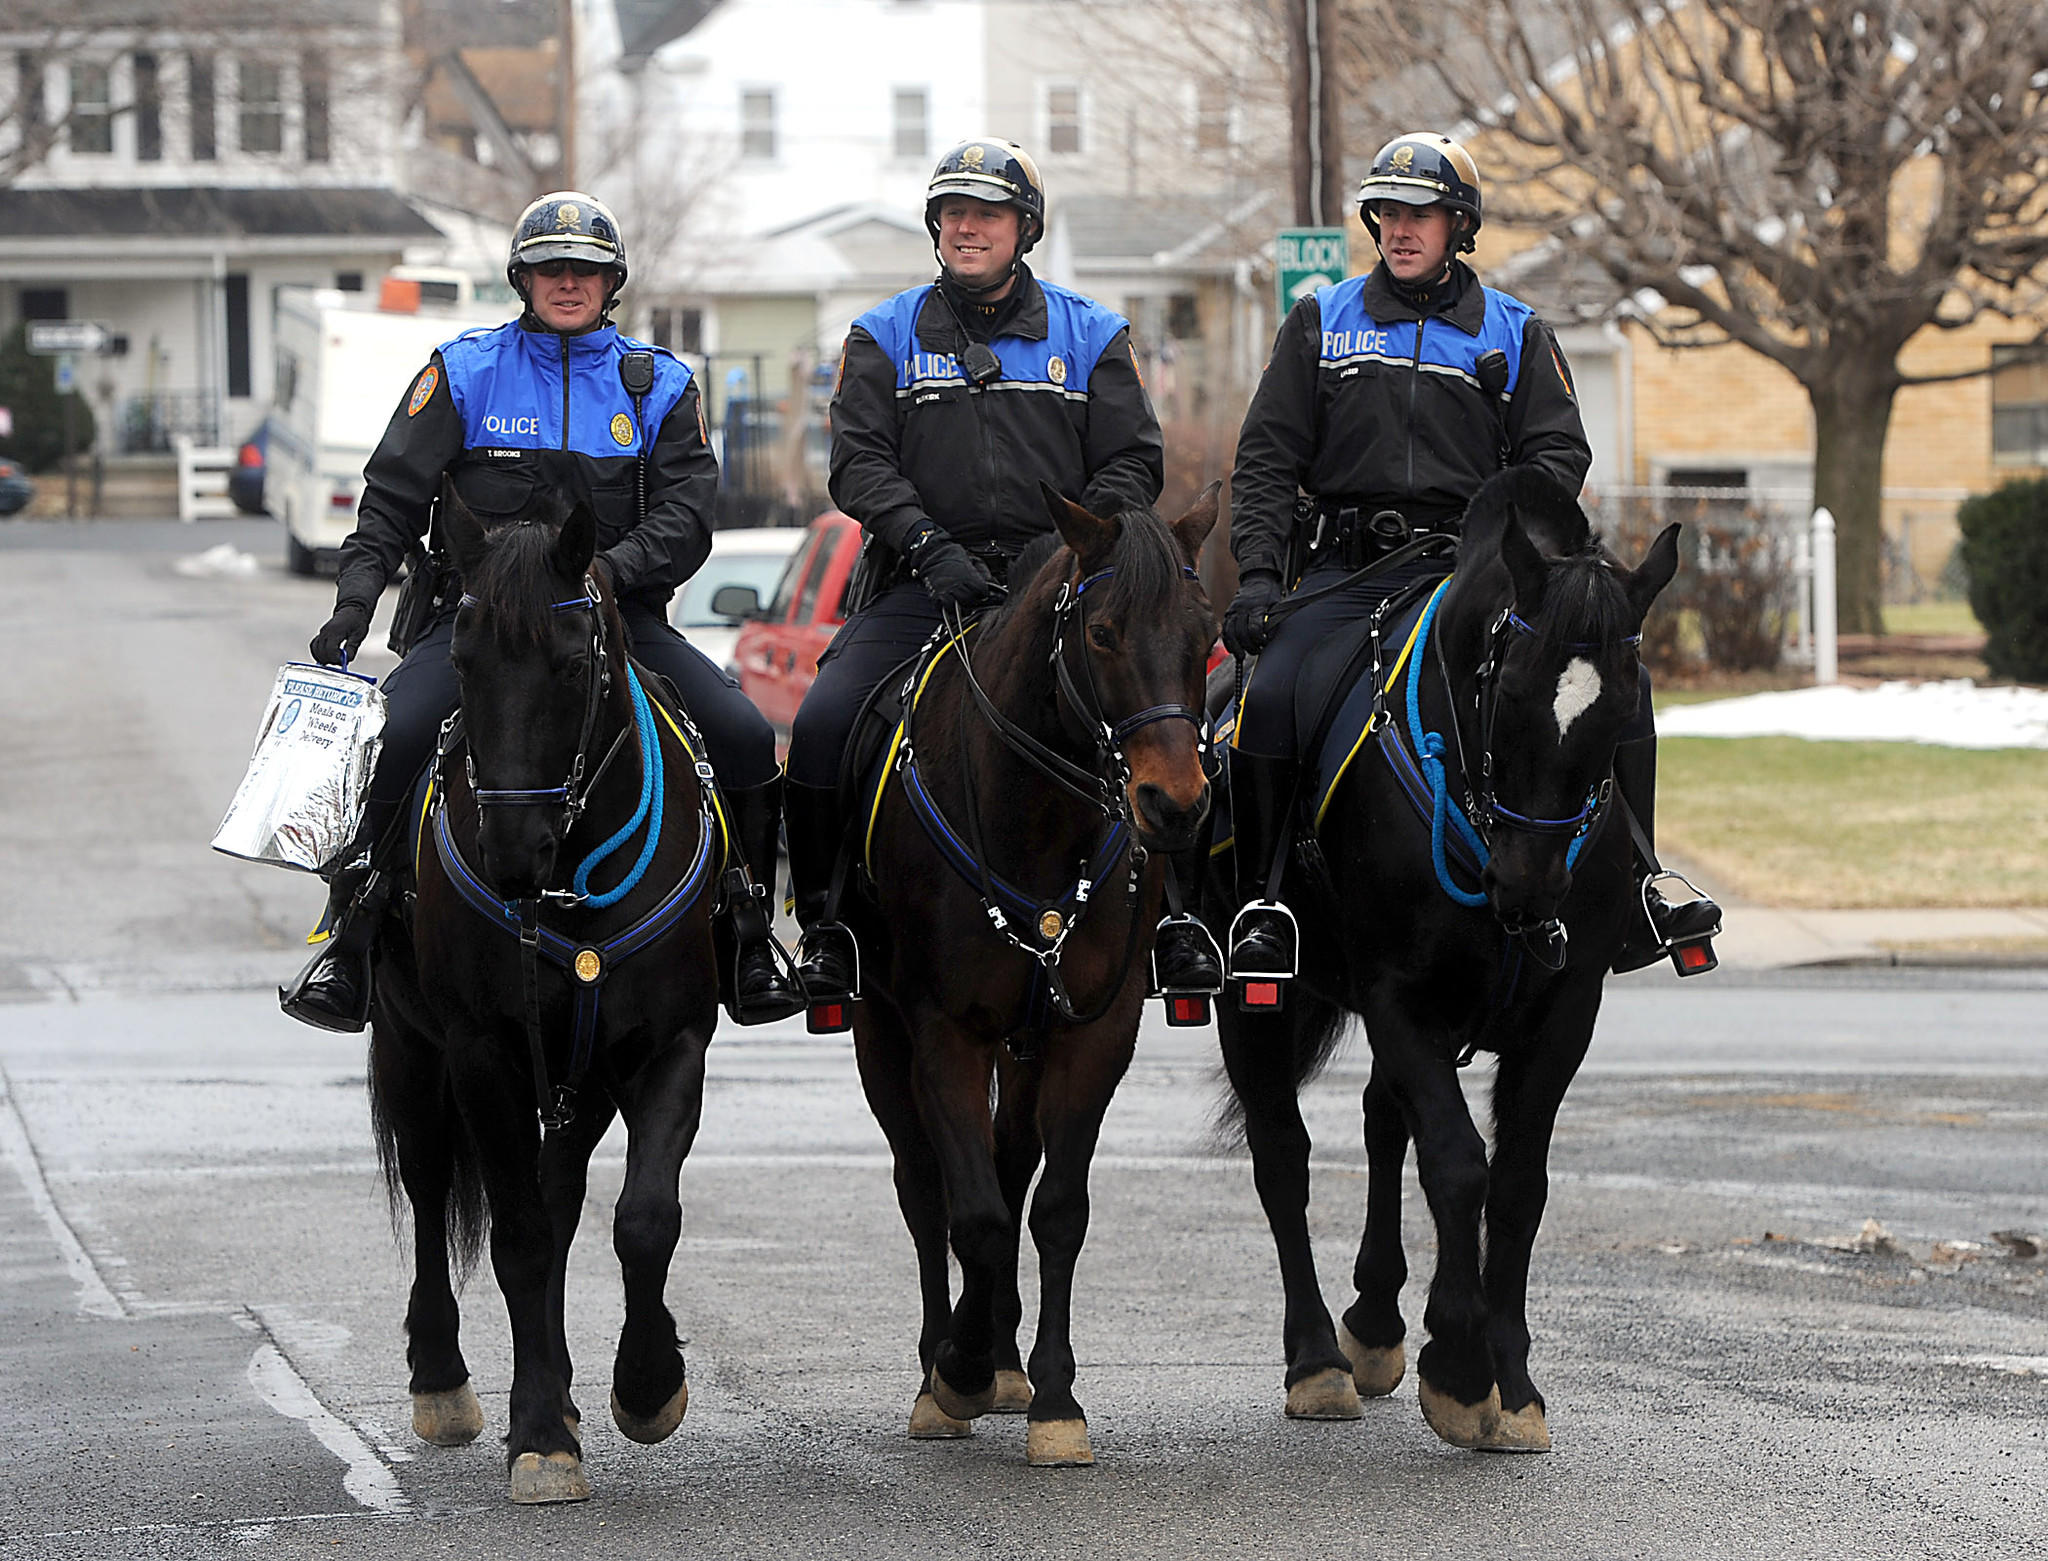 Bethlehem mounted police officers (from left) Tim Brooks, Jon Buskirk and Michael Leaser are among the {lsquo}community champions' delivering Meals on Wheels.